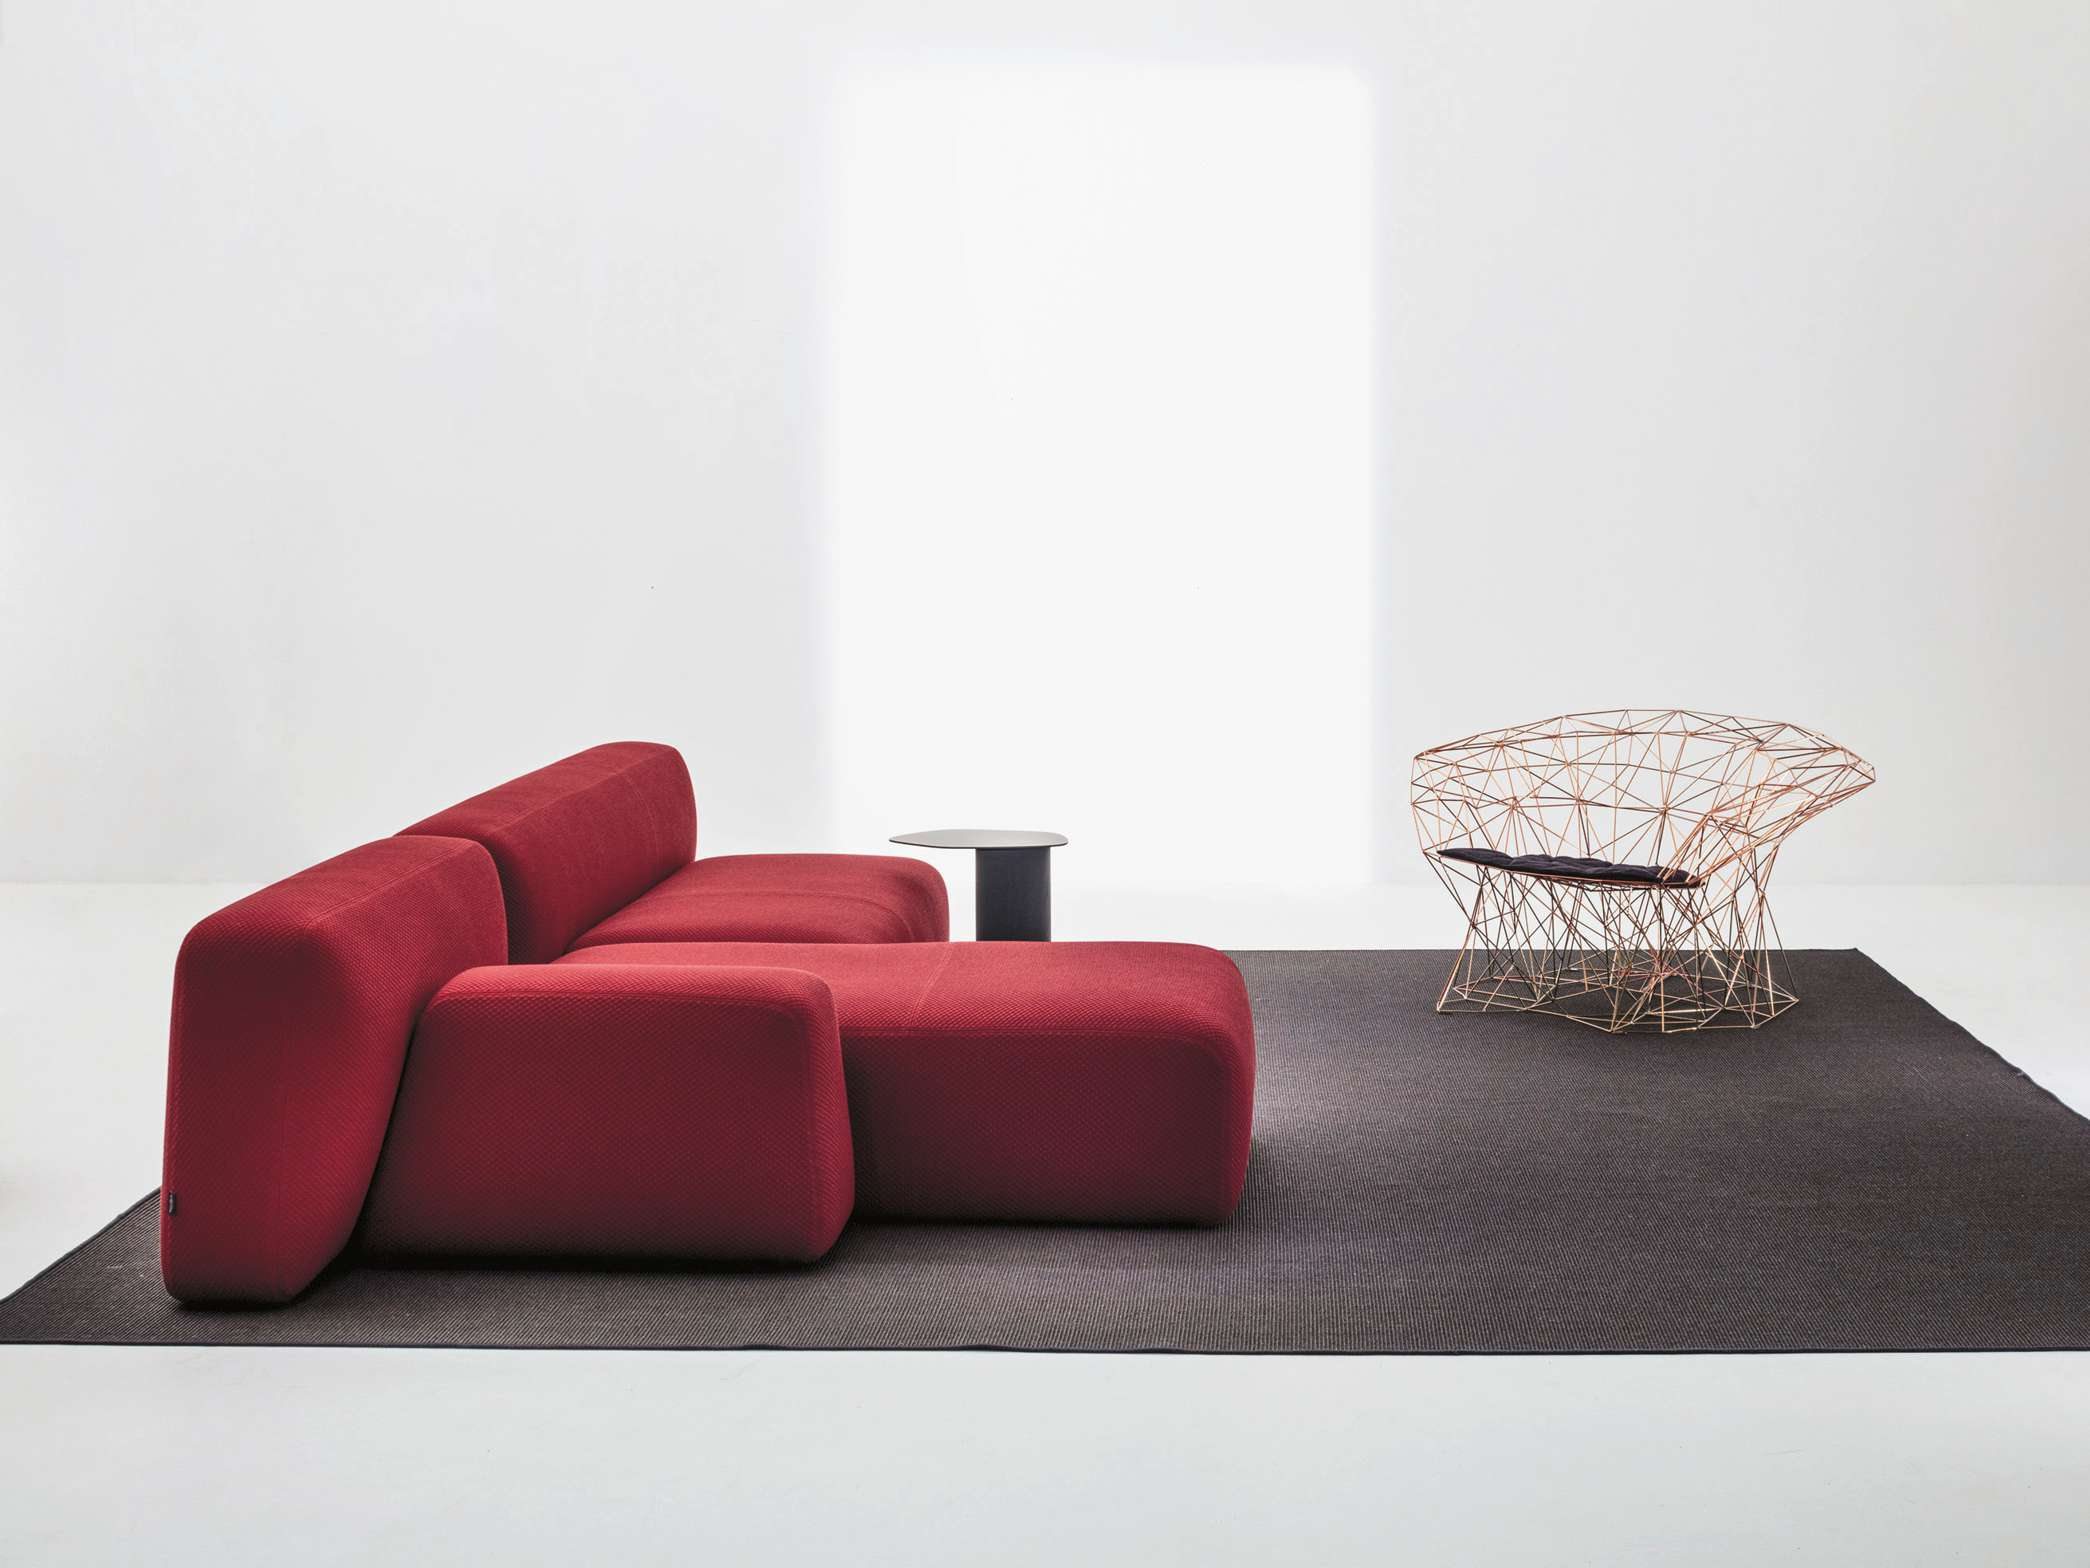 Filinea armchair gallery (2)